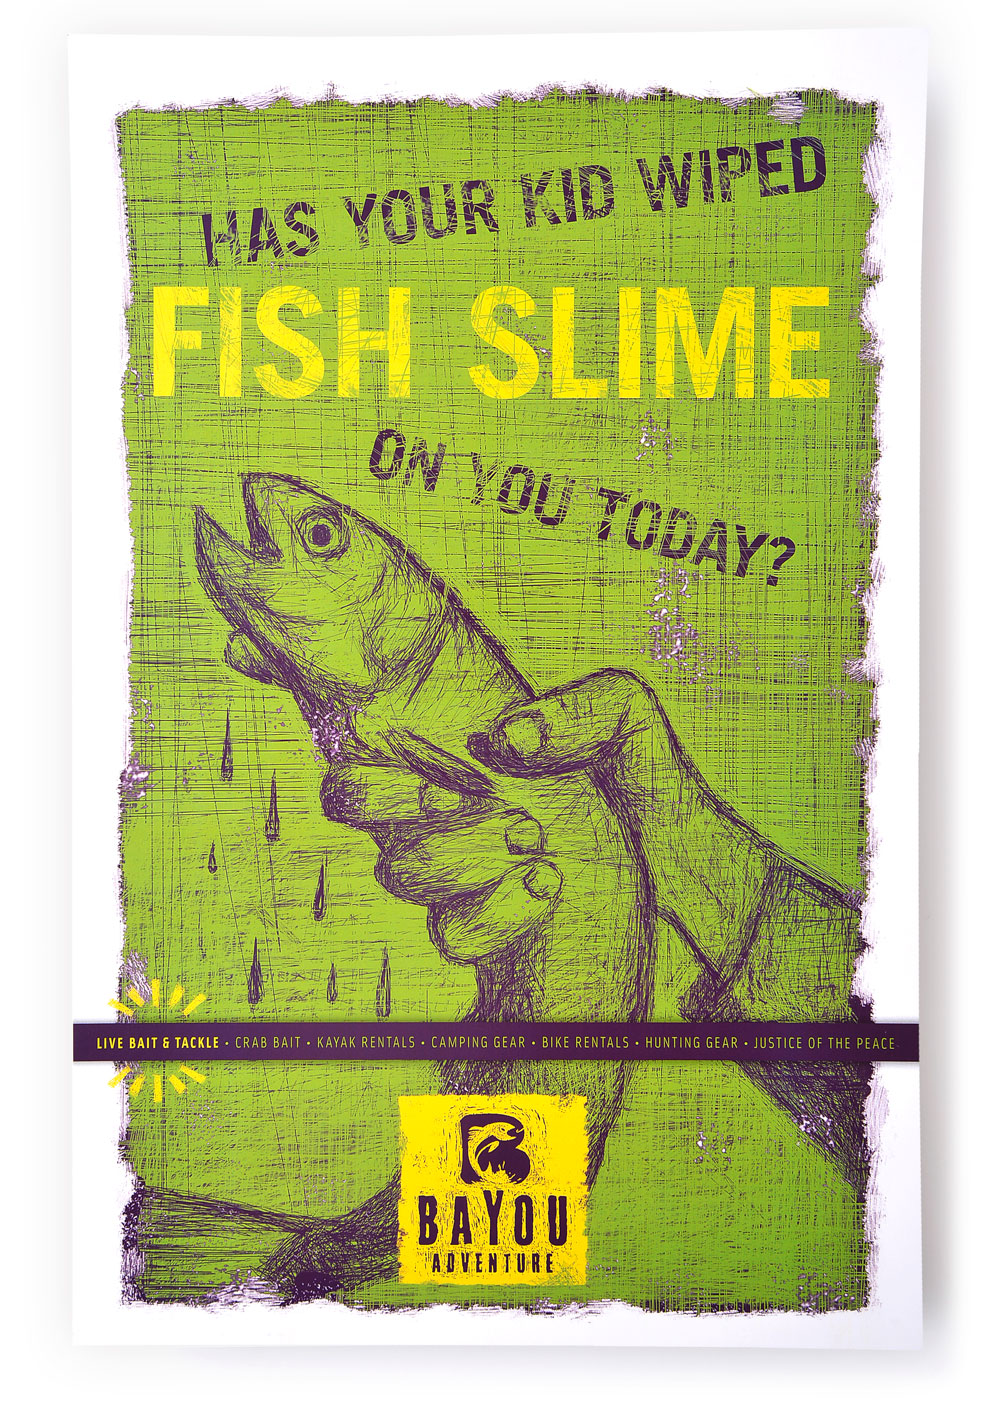 Bayou Adventure Poster Design - Fish Slime